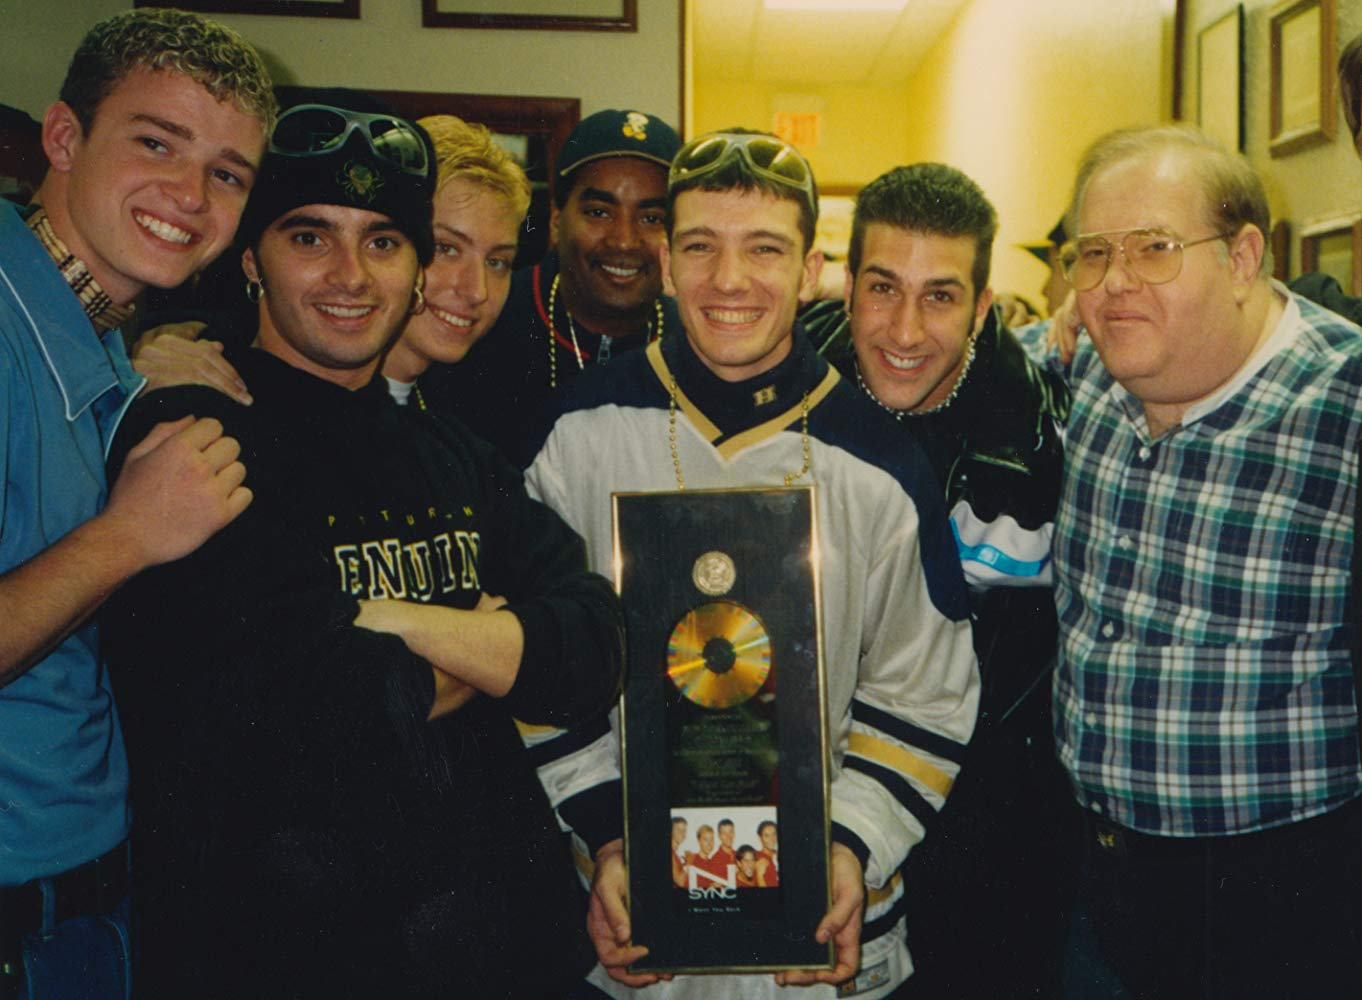 SXSW Review: THE BOY BAND CON: THE LOU PEARLMAN STORY (2019)